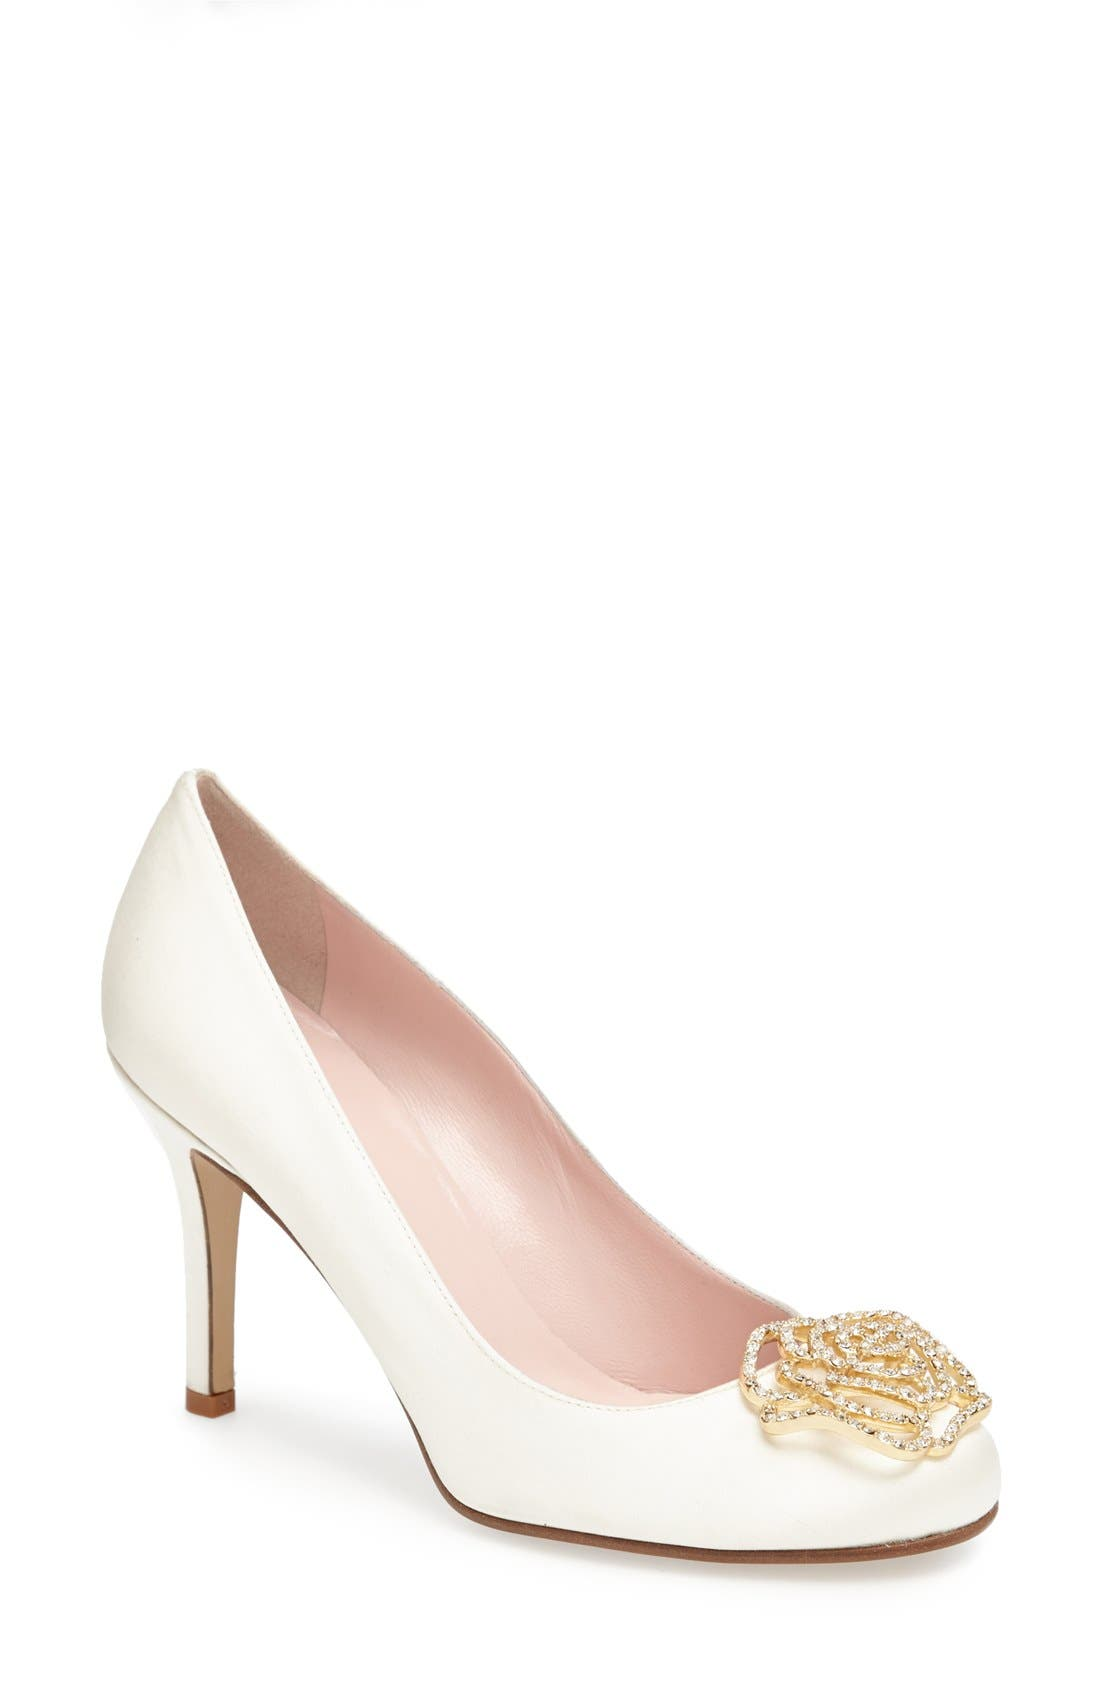 Alternate Image 1 Selected - kate spade new york 'kari' pump (Women)